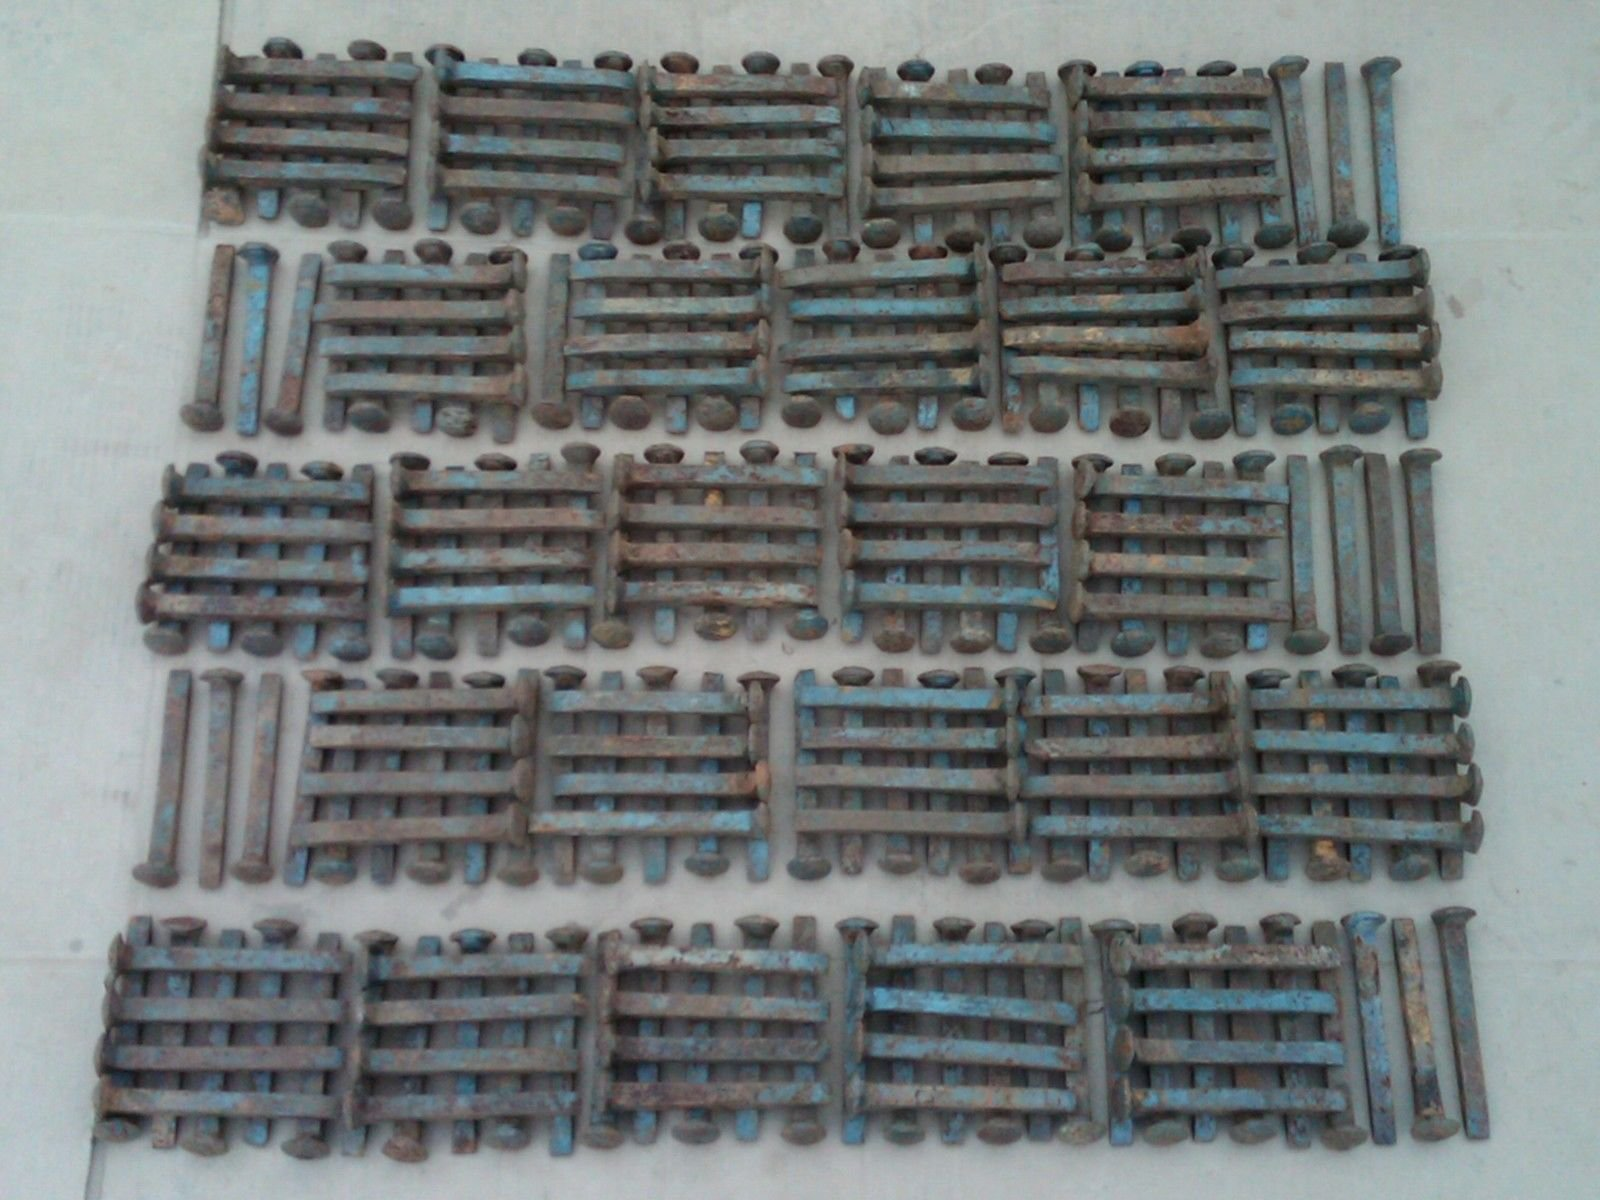 250 Railroad Spikes by US Rail